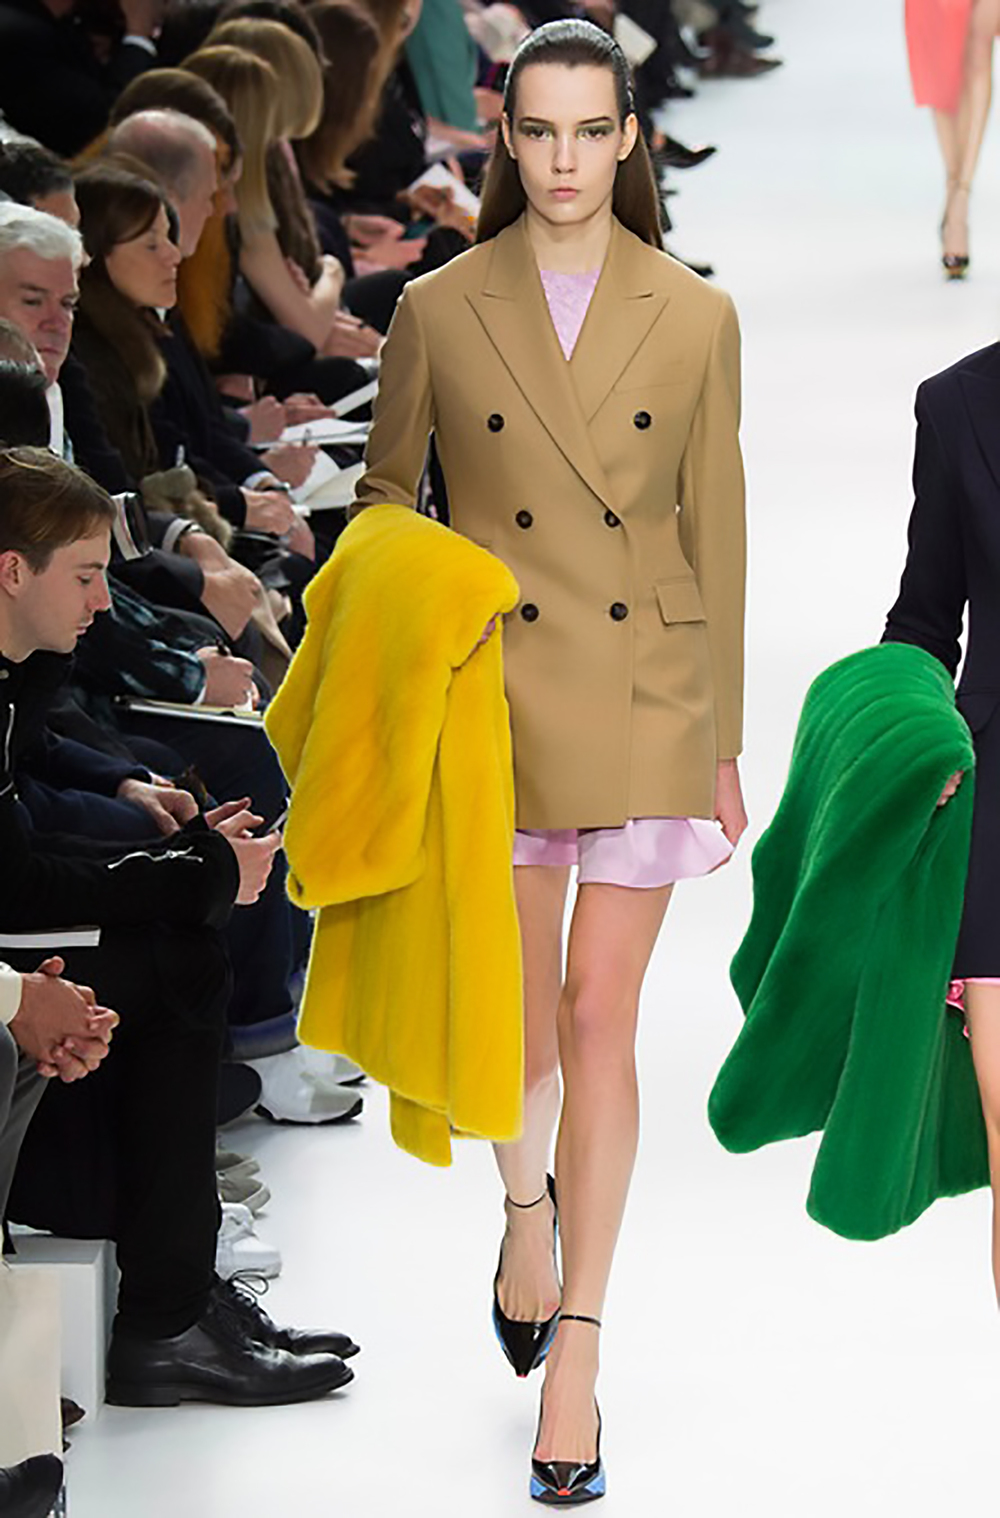 style.com Christian Dior Fall 2014 rtw look 17 Fall 2014 Paris 1500.jpg